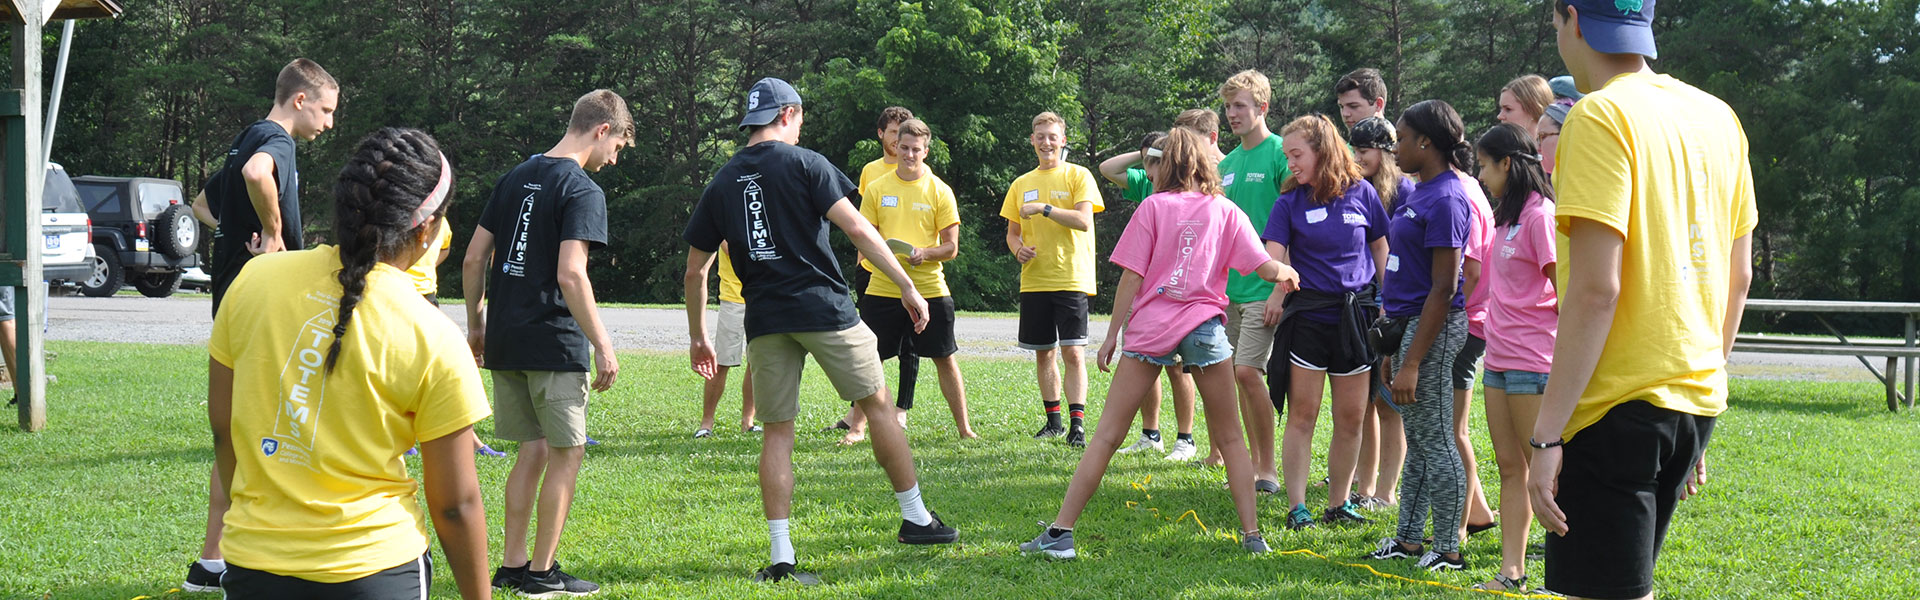 Orientation games at TOTEMS